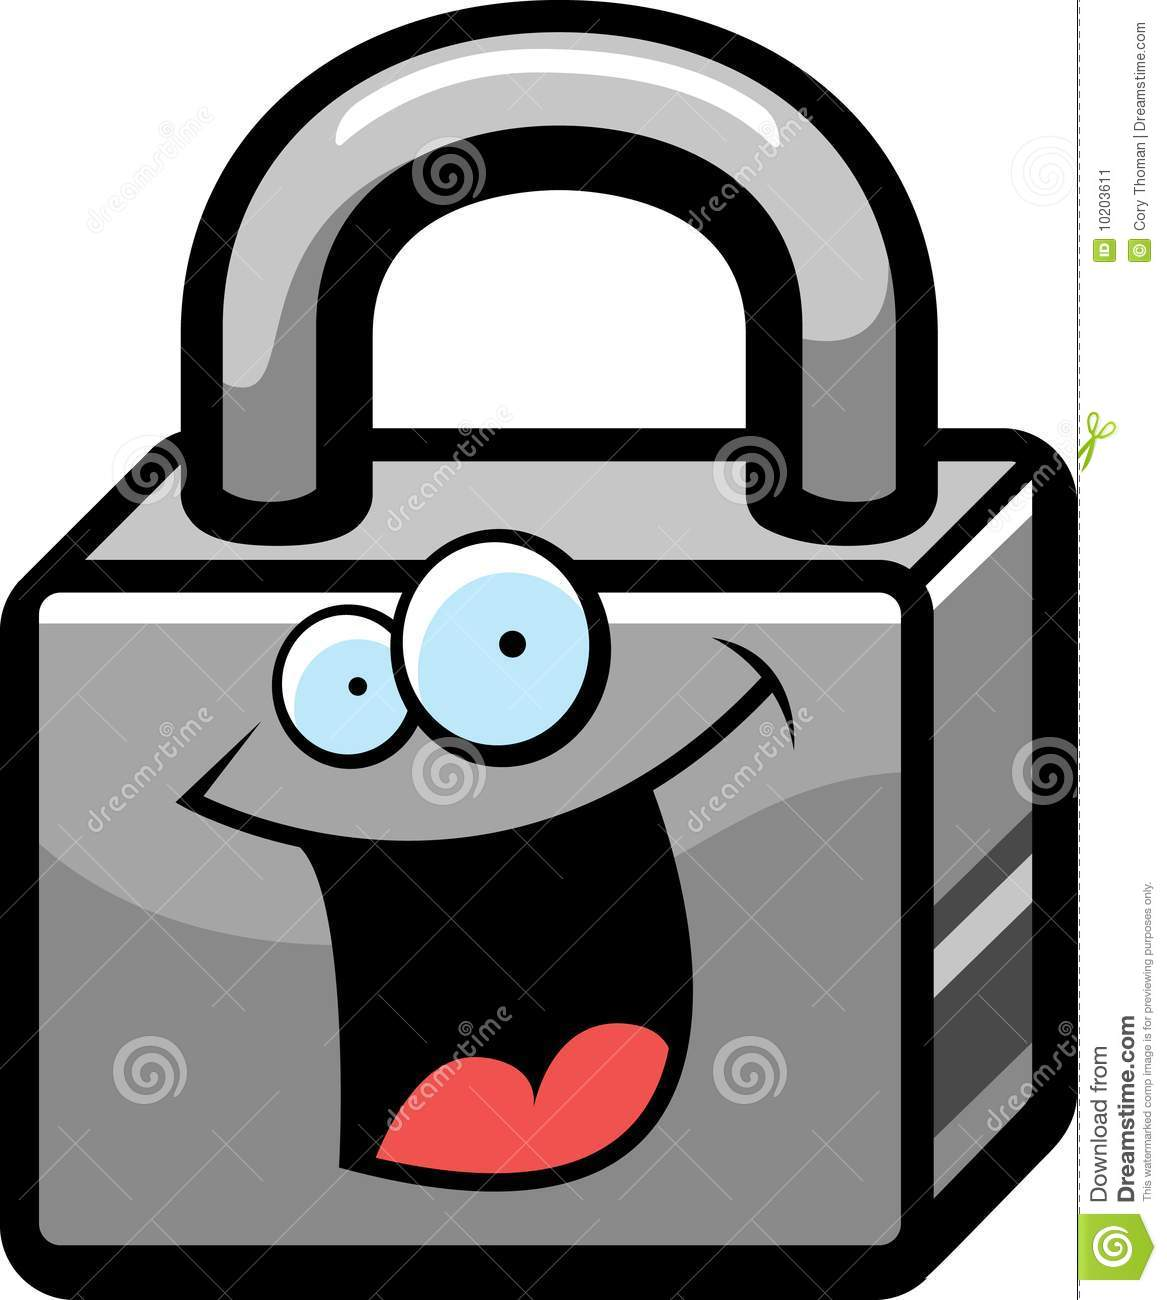 Lock Smiling Stock Image - Image: 10203611